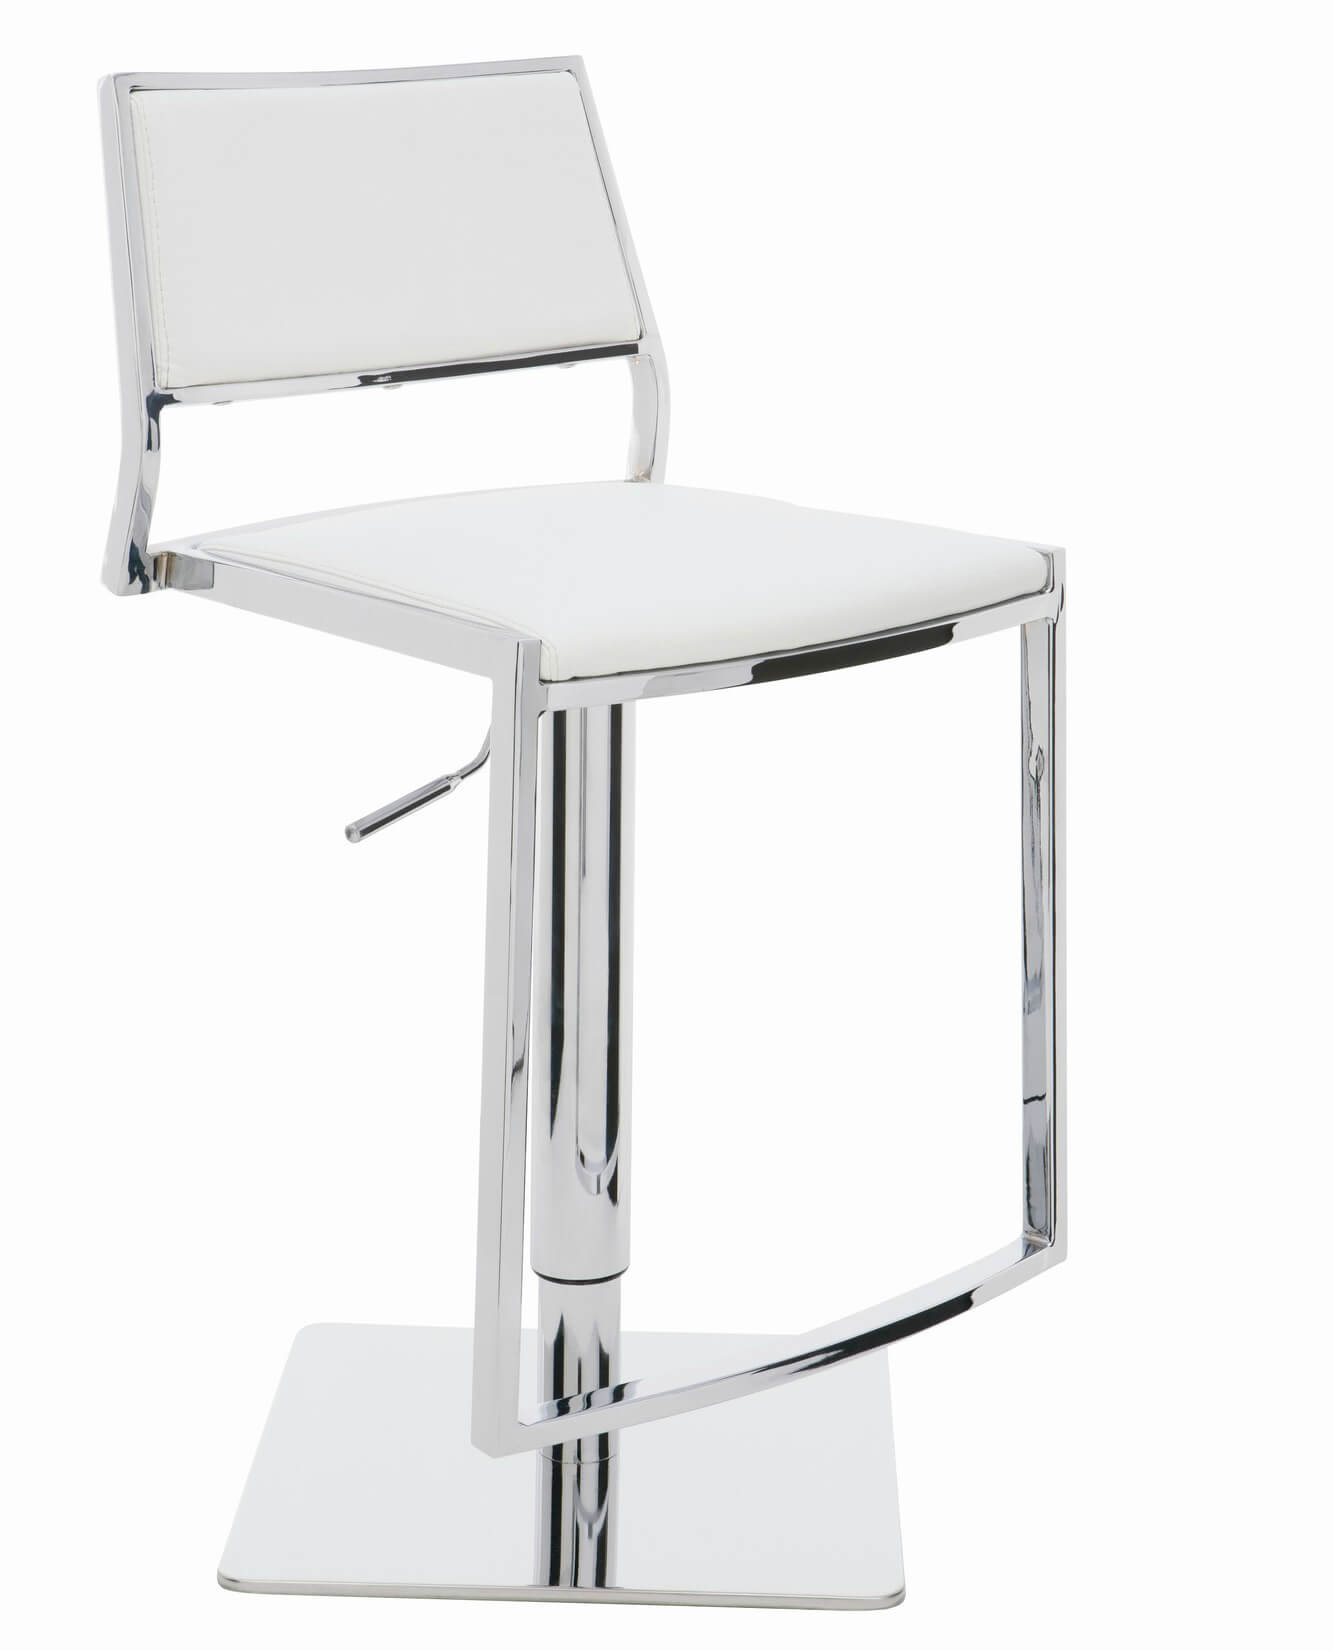 This adjustable white leather stool offers an extra wide seat and back and foot rest for optimal comfort (for a modern stool design).